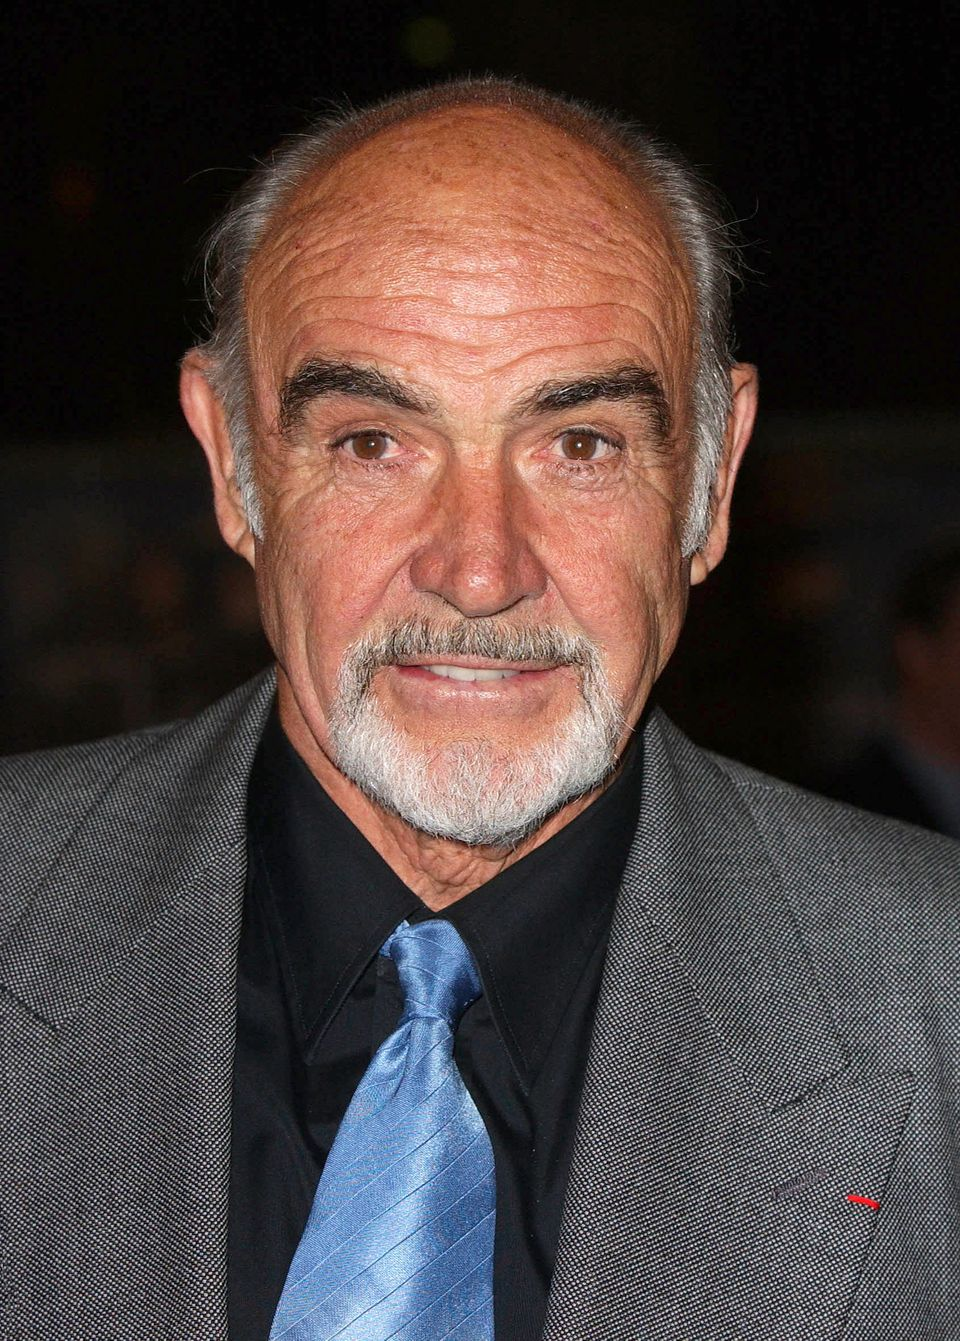 Sean Connery Attends 'The League Of Extraordinary Gentlemen' Premiere In London's Leicester Square. (Photo by Mark Cuthbert/U